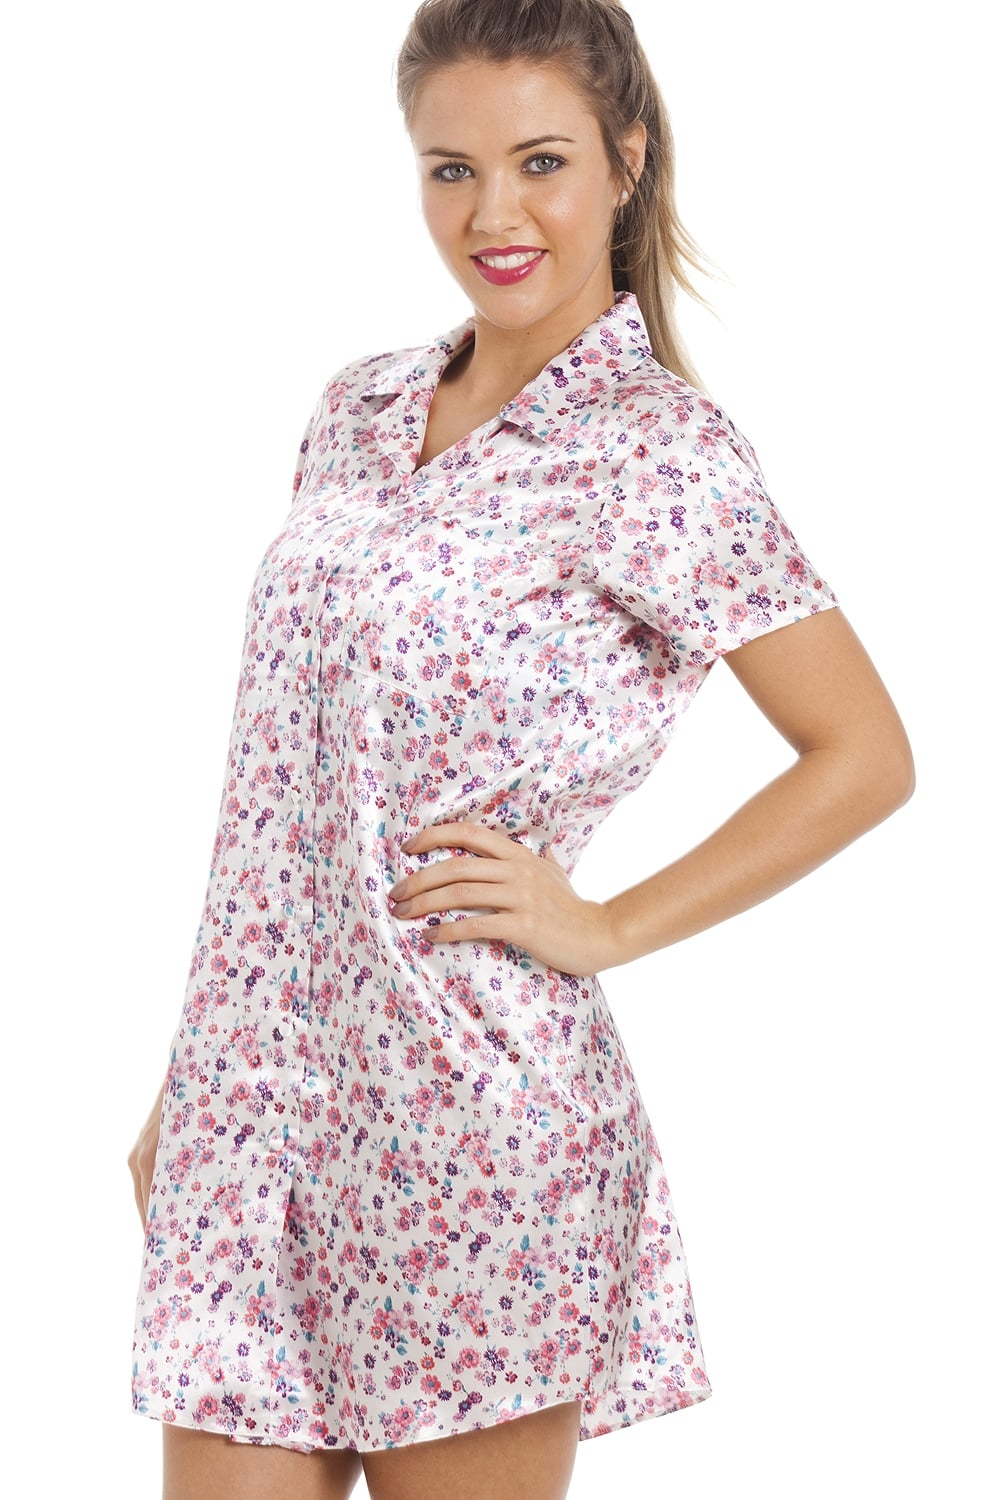 Camille Multi-Coloured Floral Print Knee Length Ivory Satin Nightshirt aa799a98f